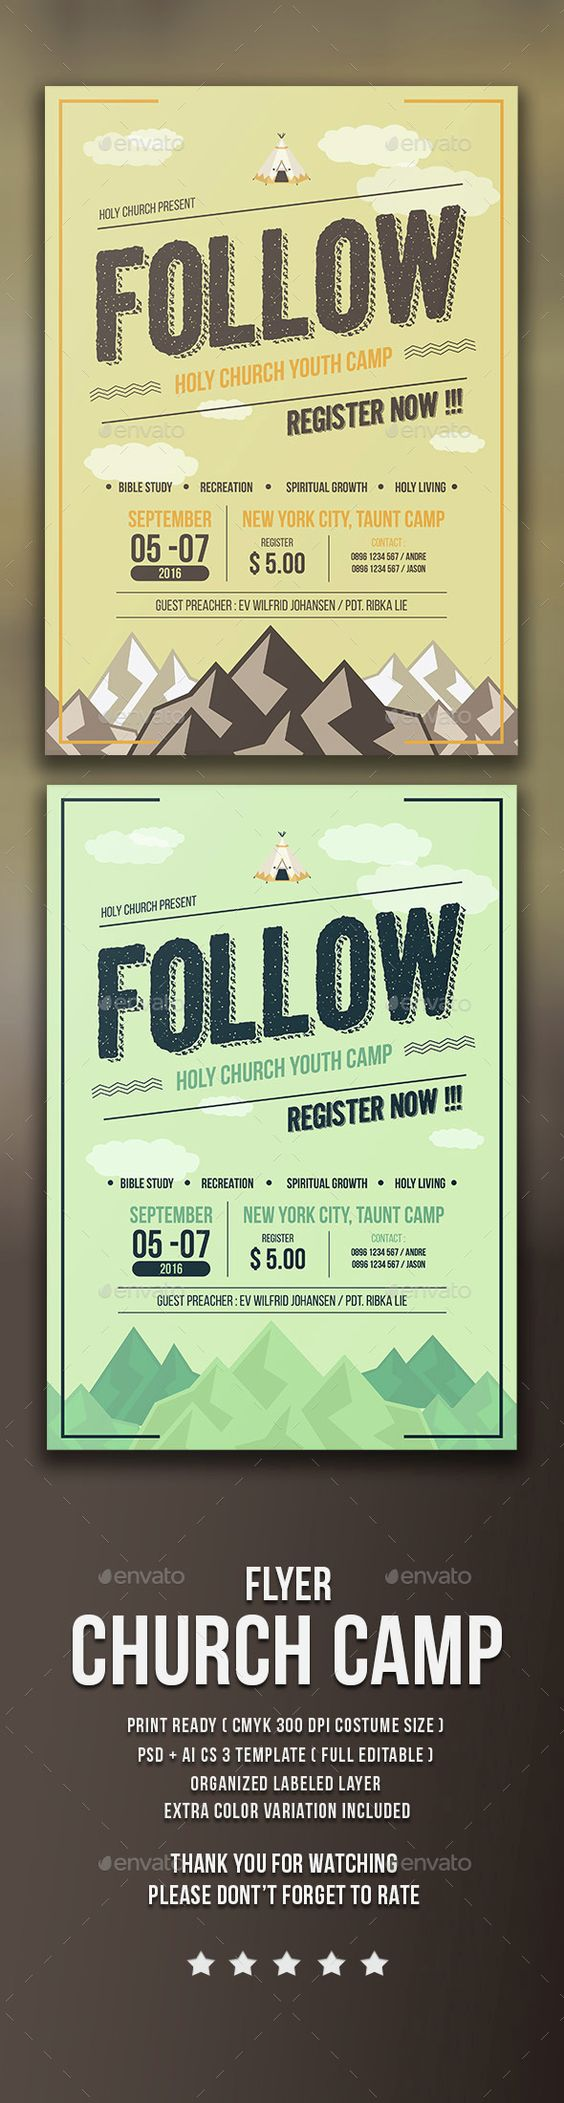 Church Camp Flyer Template PSD. Download here: http://graphicriver.net/item/church-camp-flyer/15188432?ref=ksioks